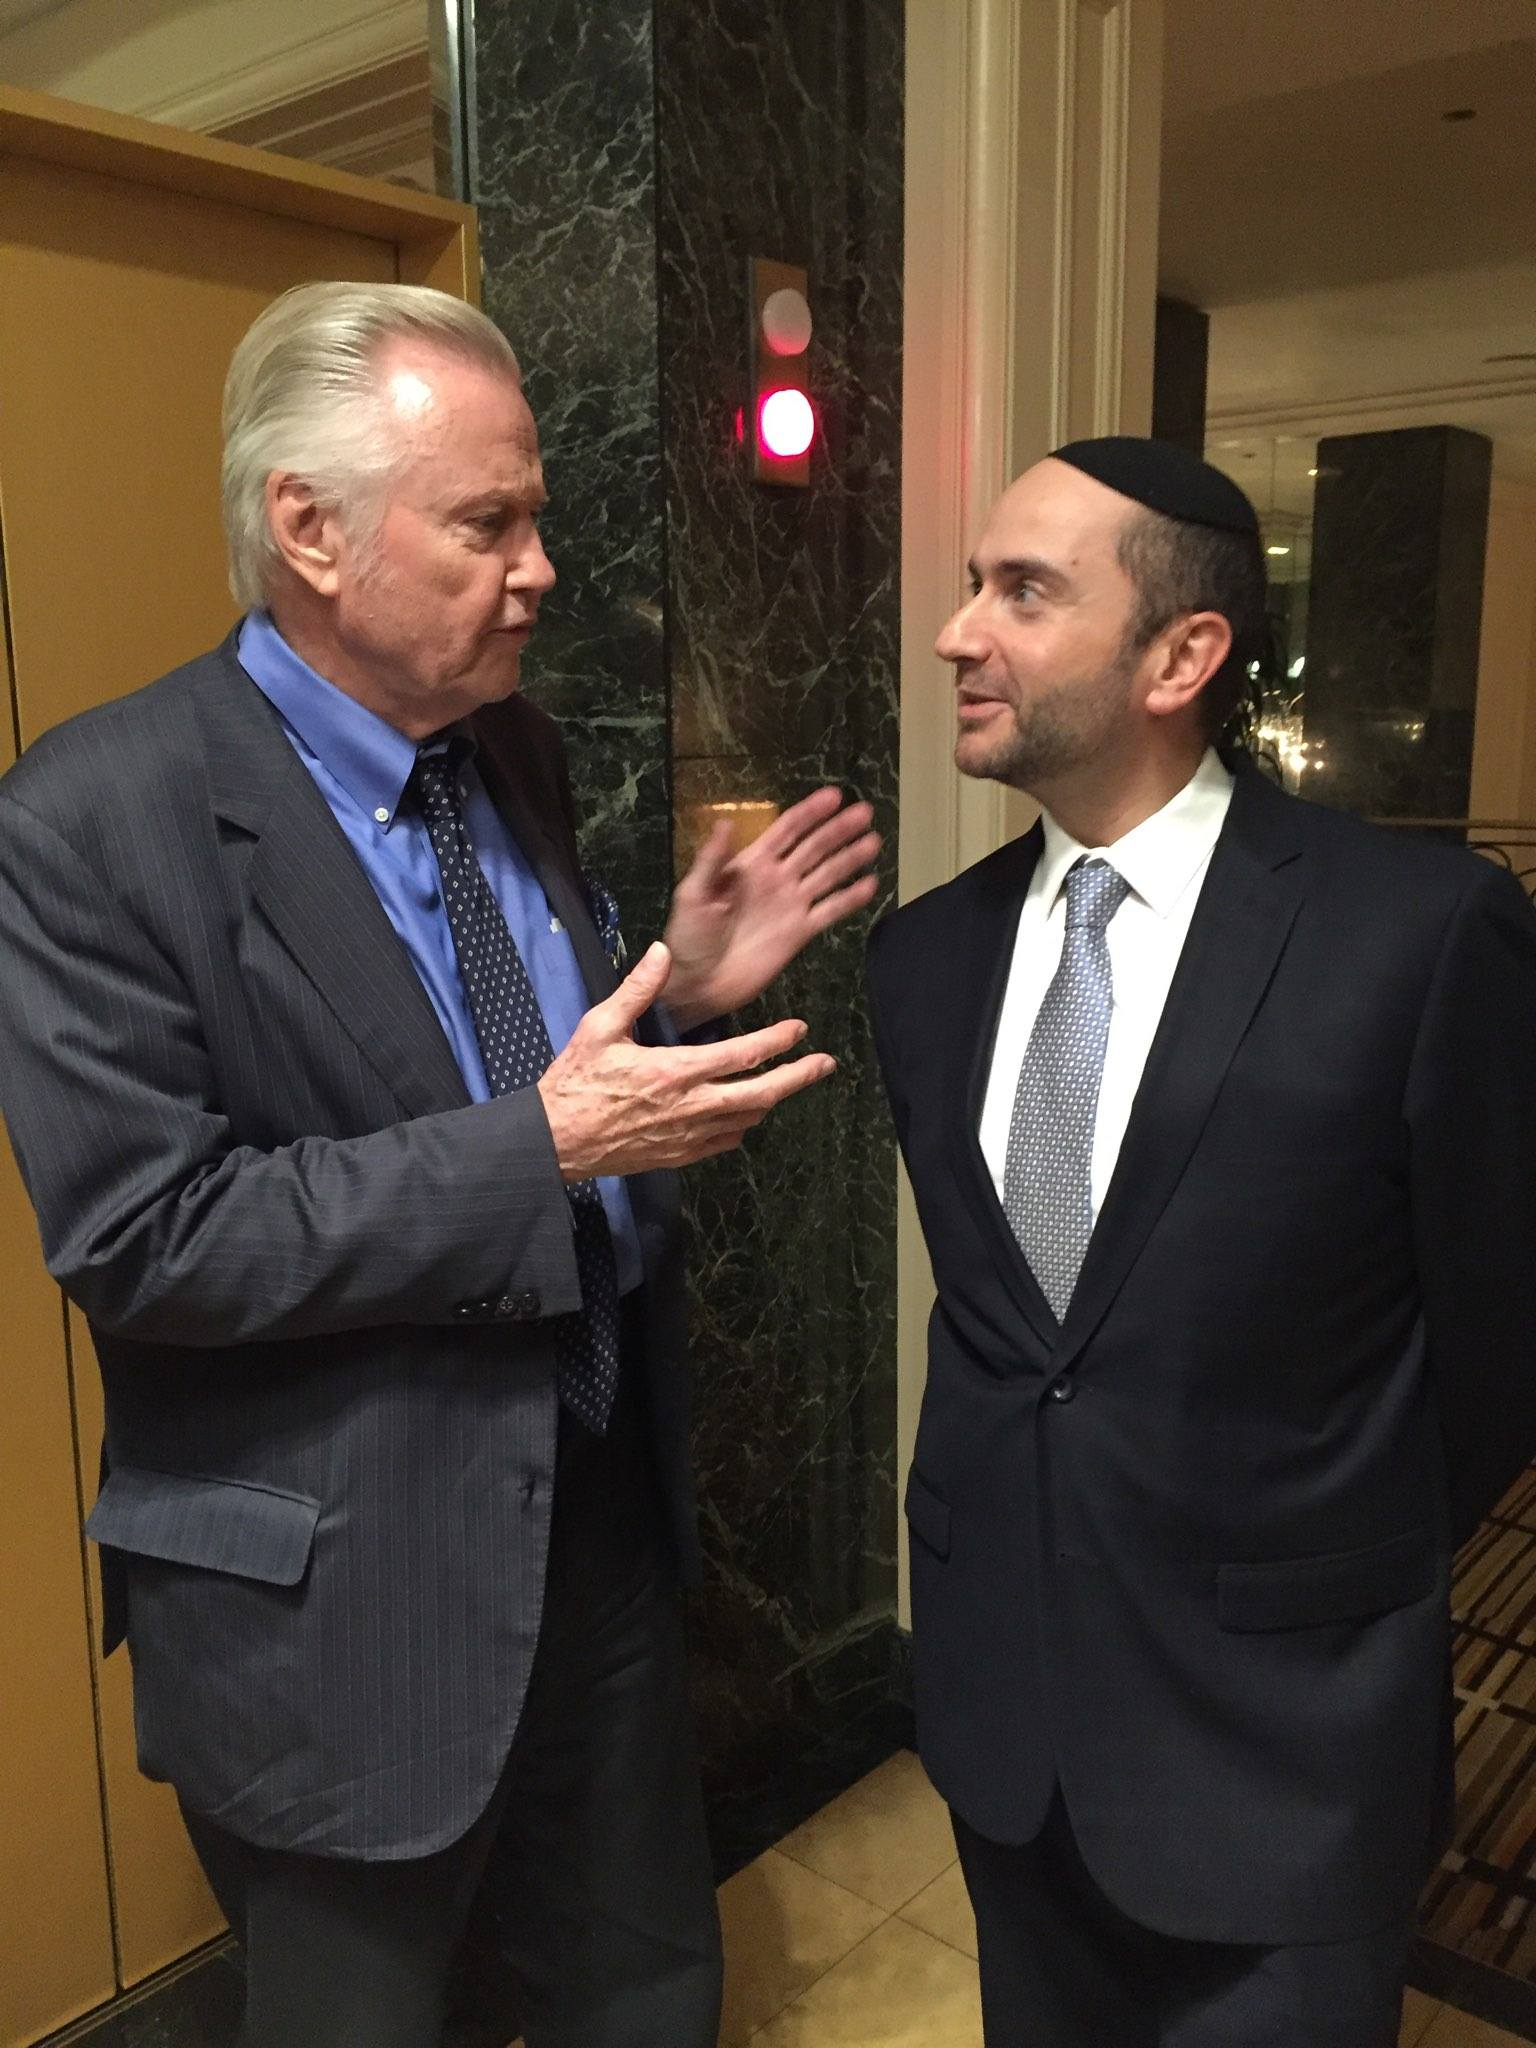 Rabbi Pini Dunner with actor Jon Voight in 2016